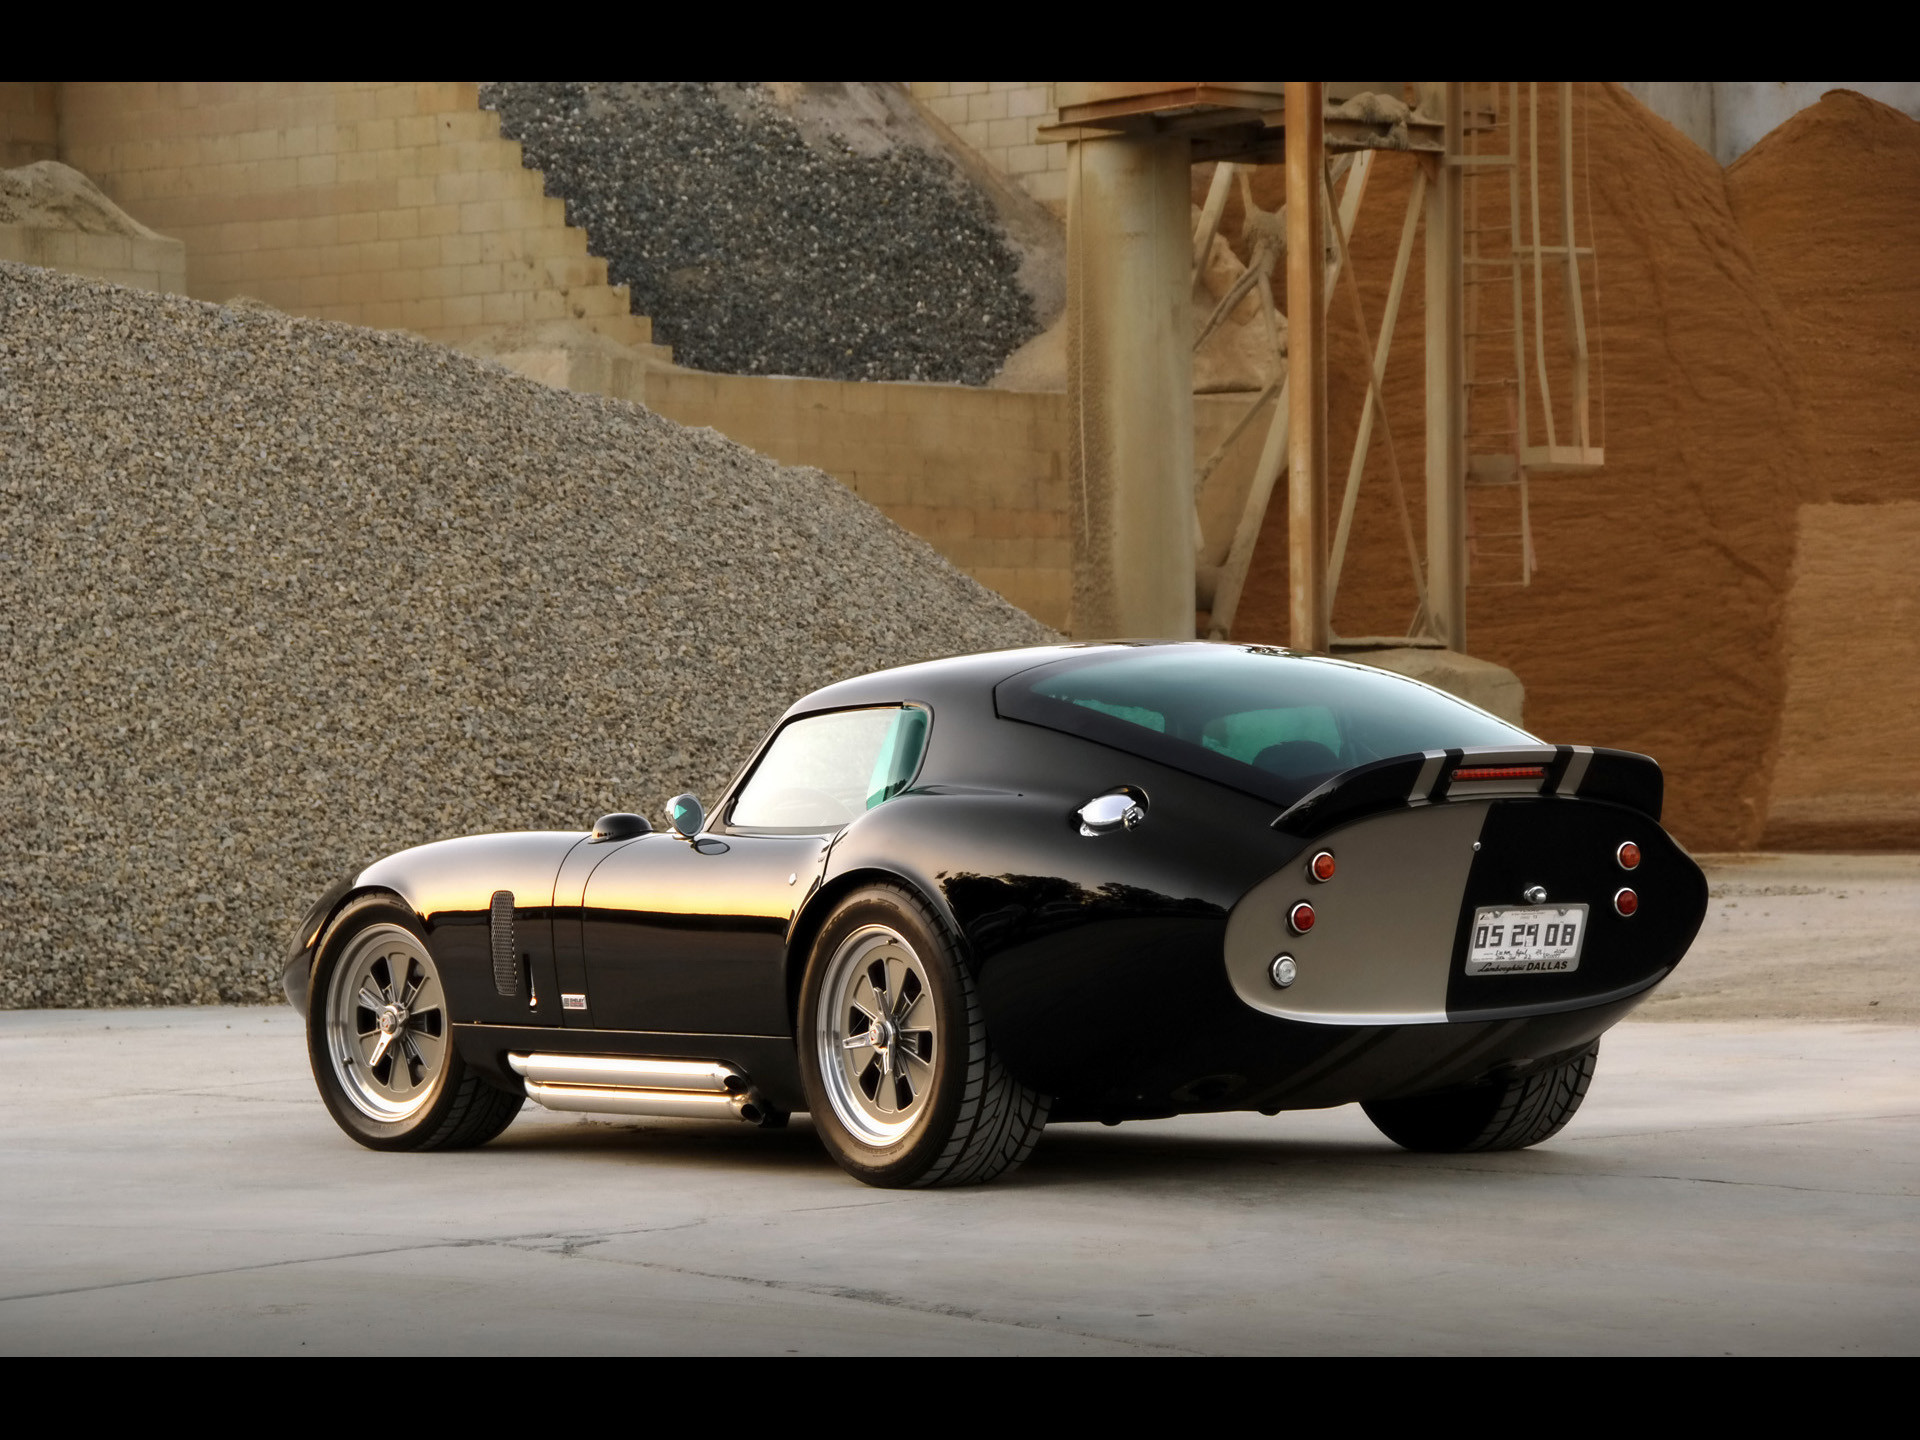 Wallpapers with 2009 Superformance Shelby Daytona Cobra Coupe, size: This  is the high resolution picture no.